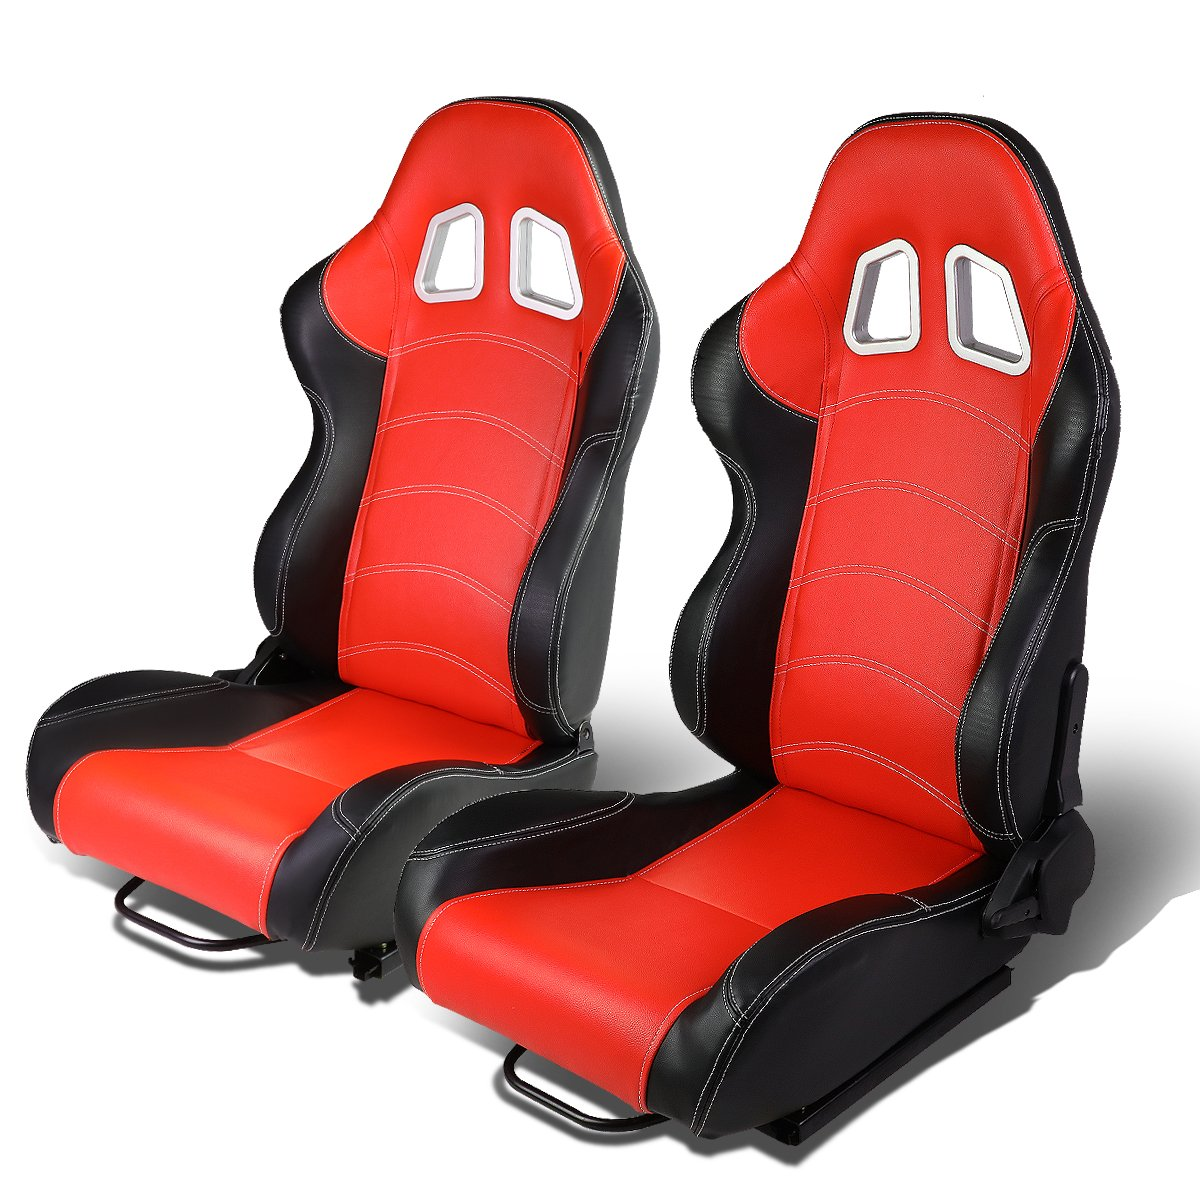 Black//Red Set of 2 Universal Double Stitch Type-R PVC Leather Reclinable Racing Seats w//Sliders